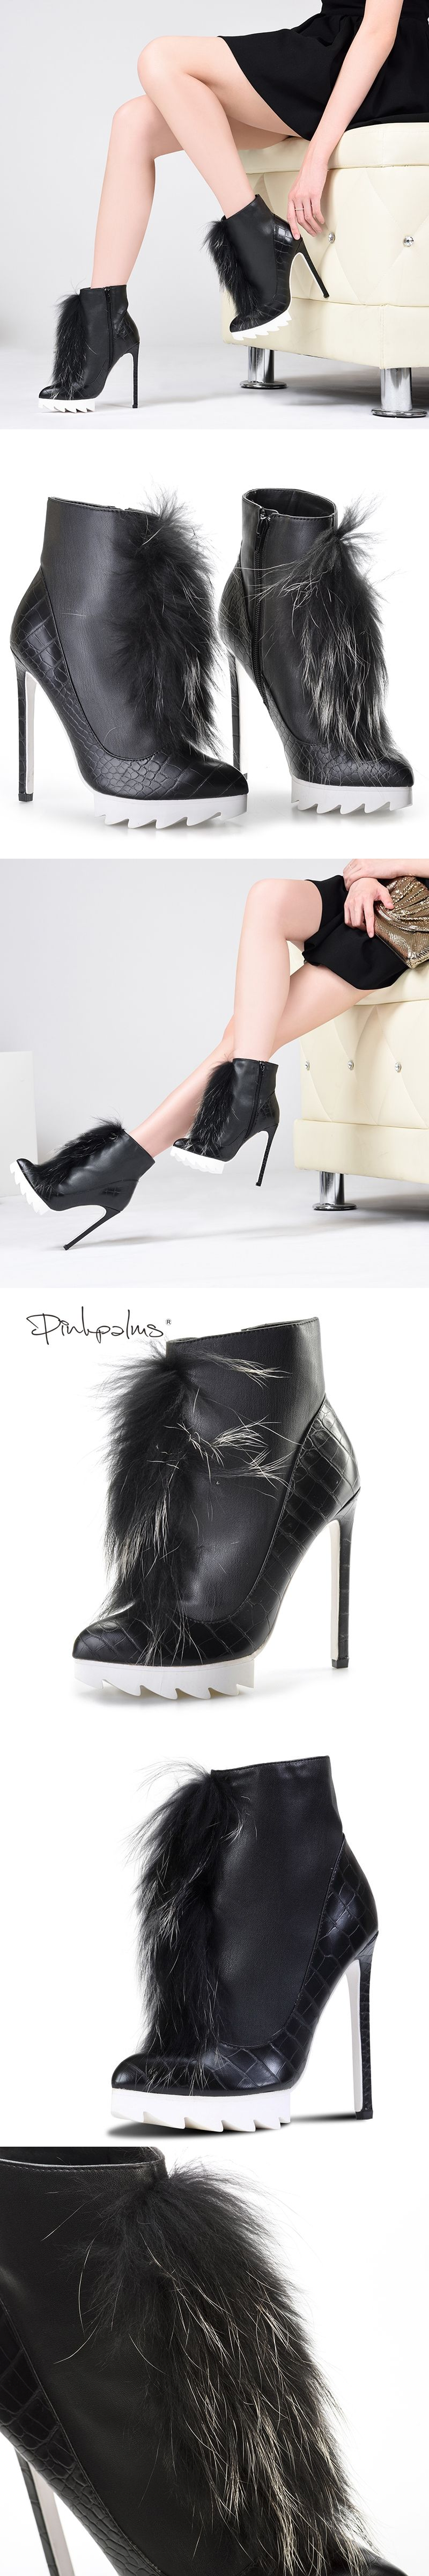 08a68d1f9d6 Brand Pink Palms high heels ankle boots for women winter snow boots with fox  fur thick